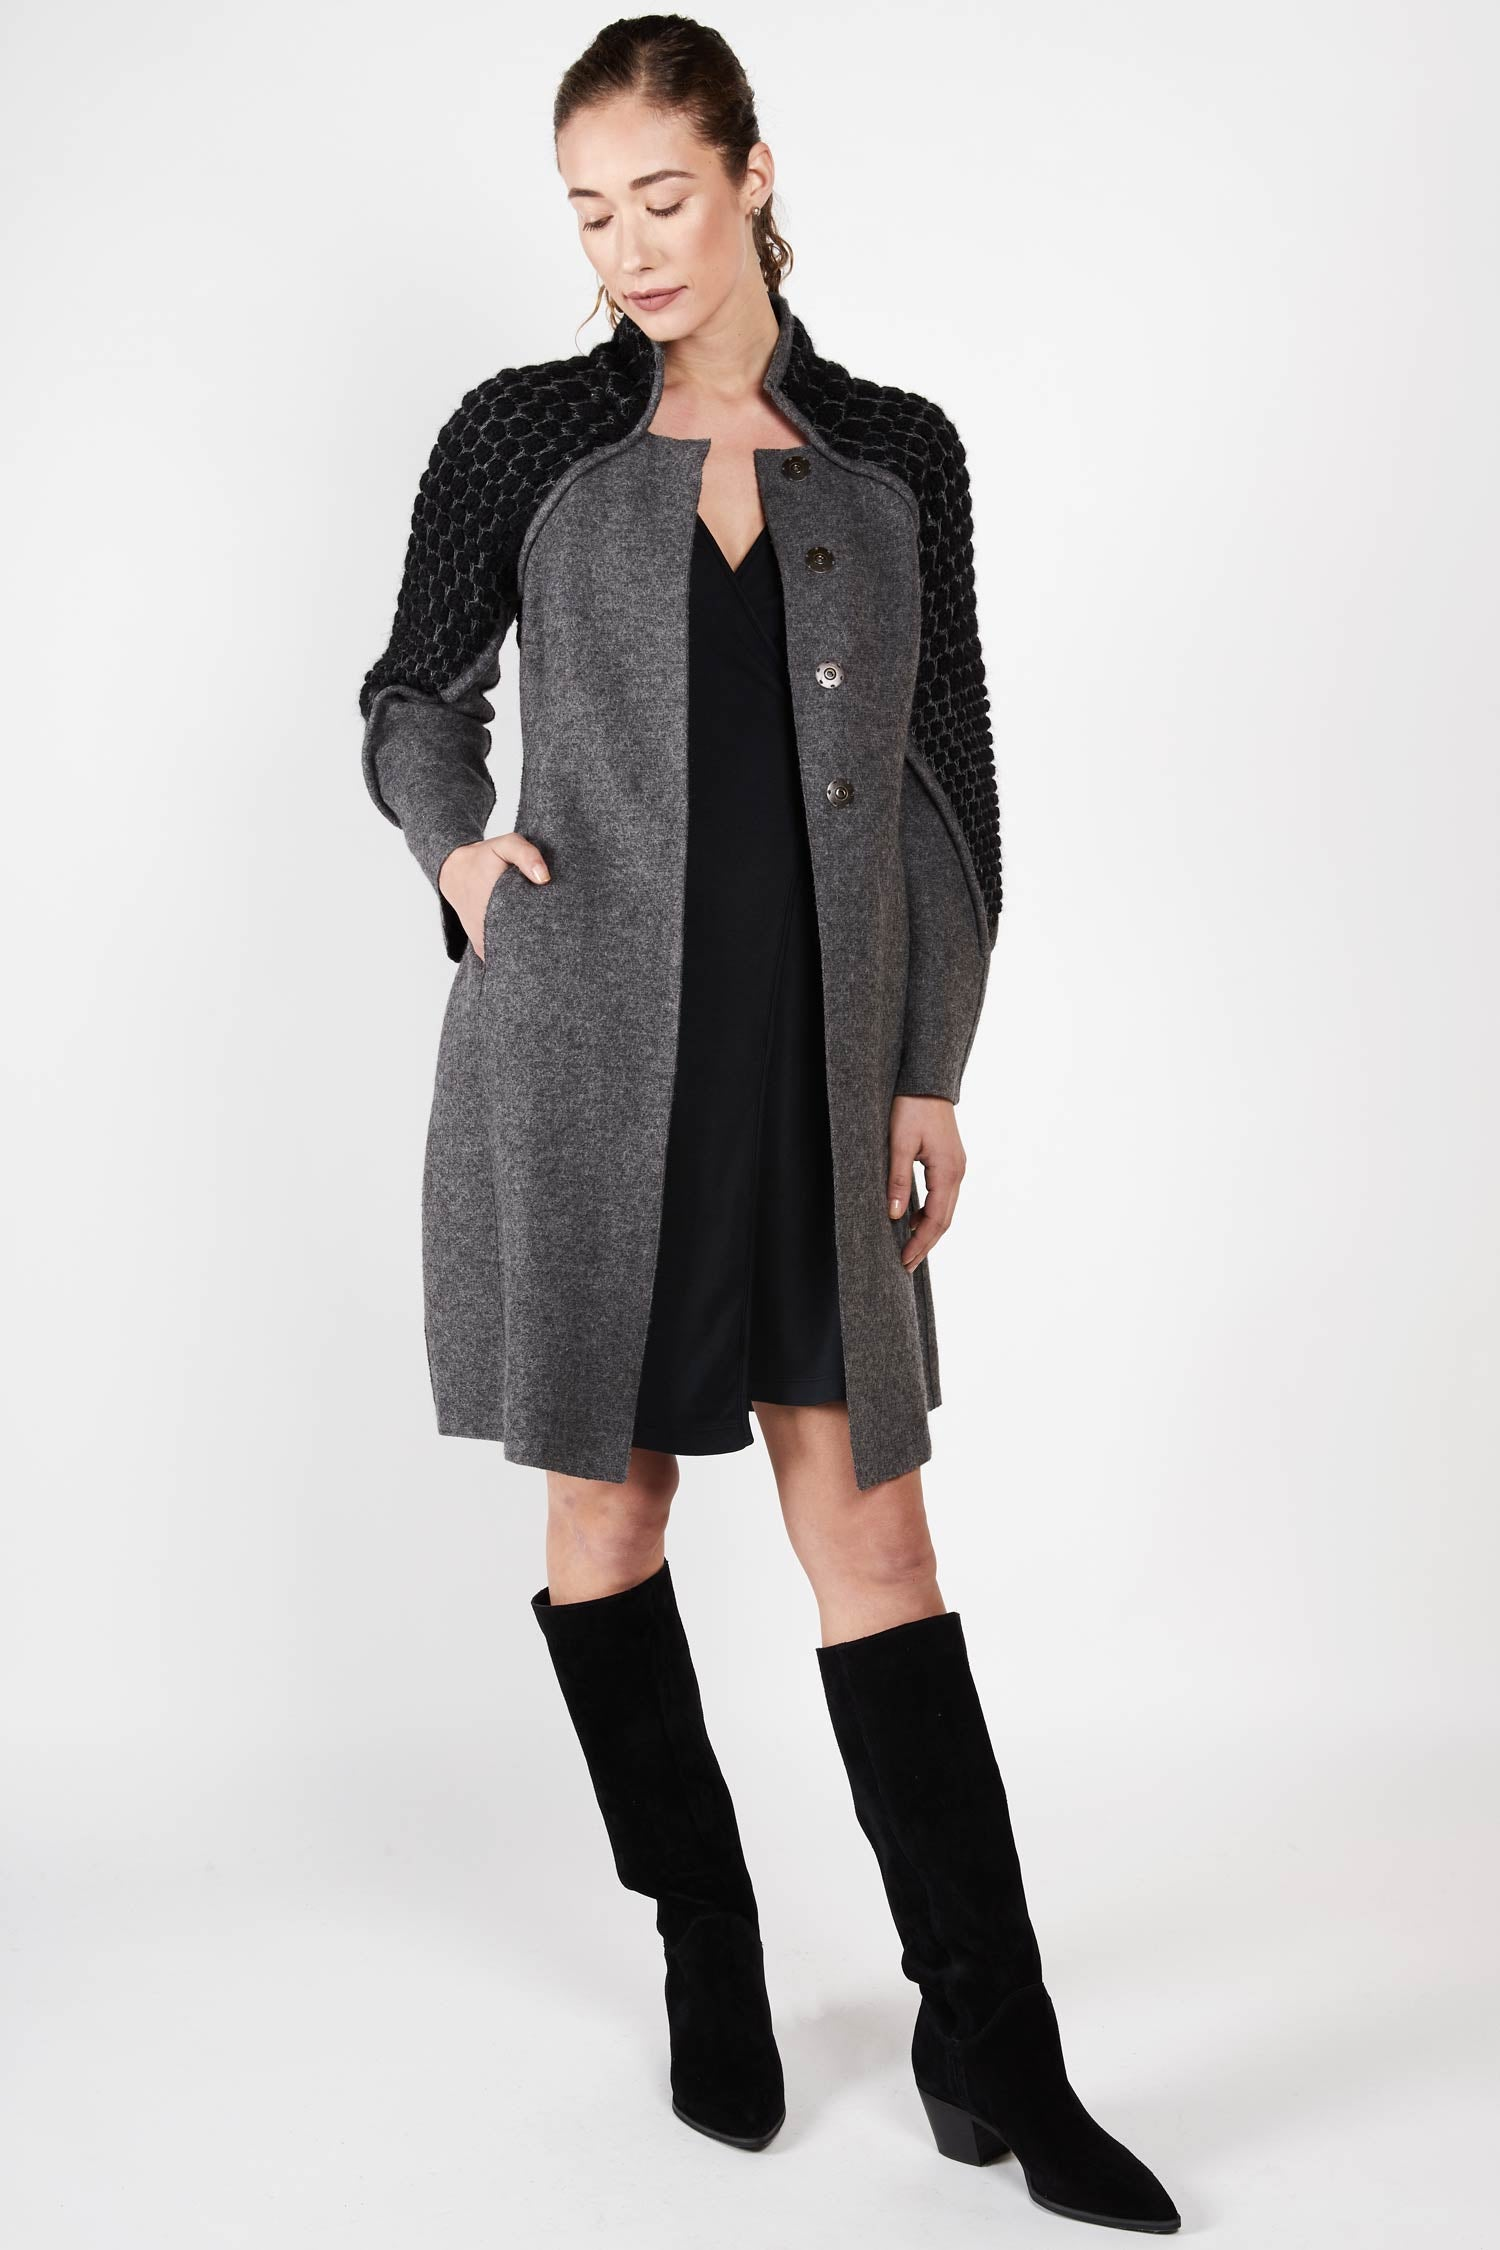 Knit and Boiled Alpaca Wool Coat - Indigenous